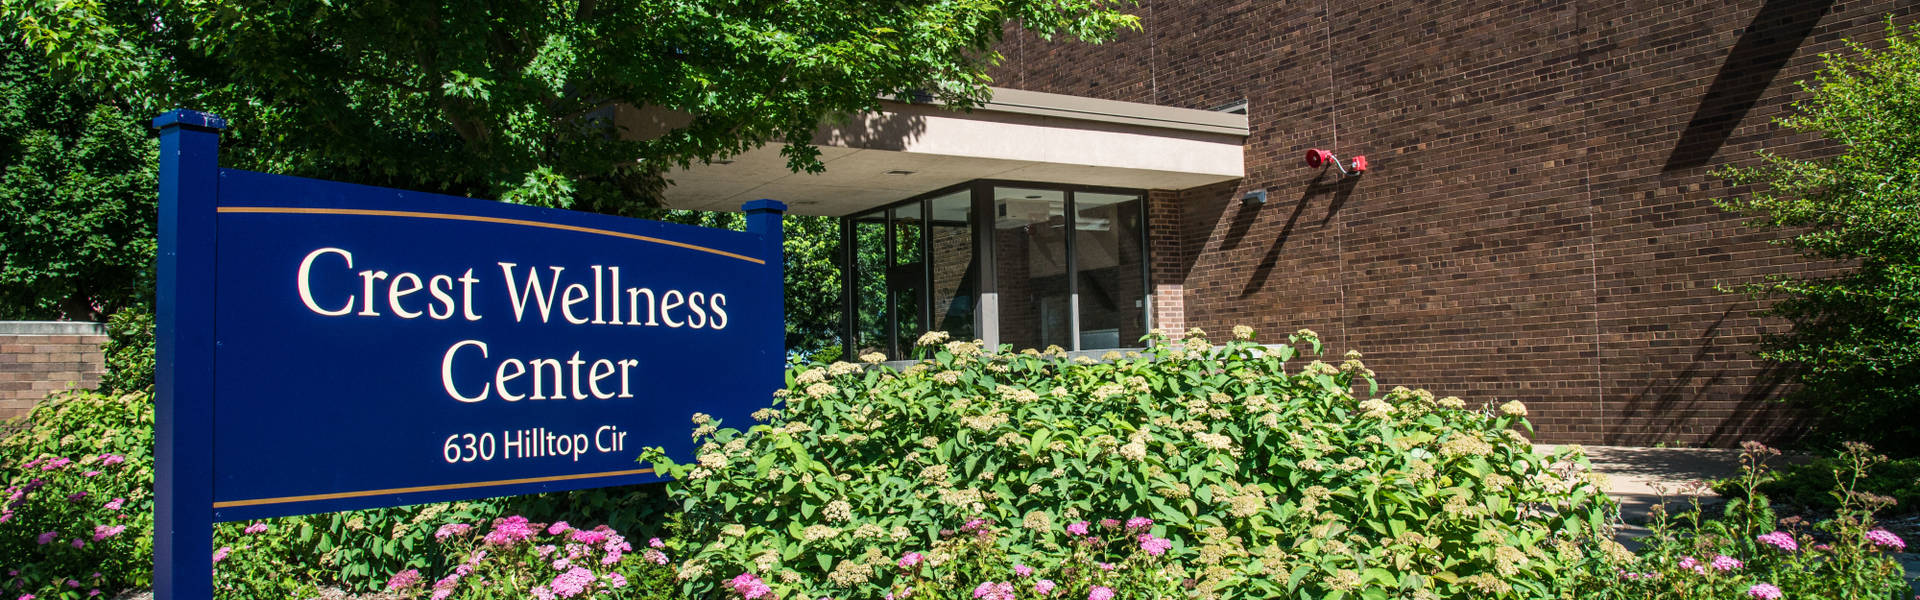 Crest Wellness Center Exterior Sign